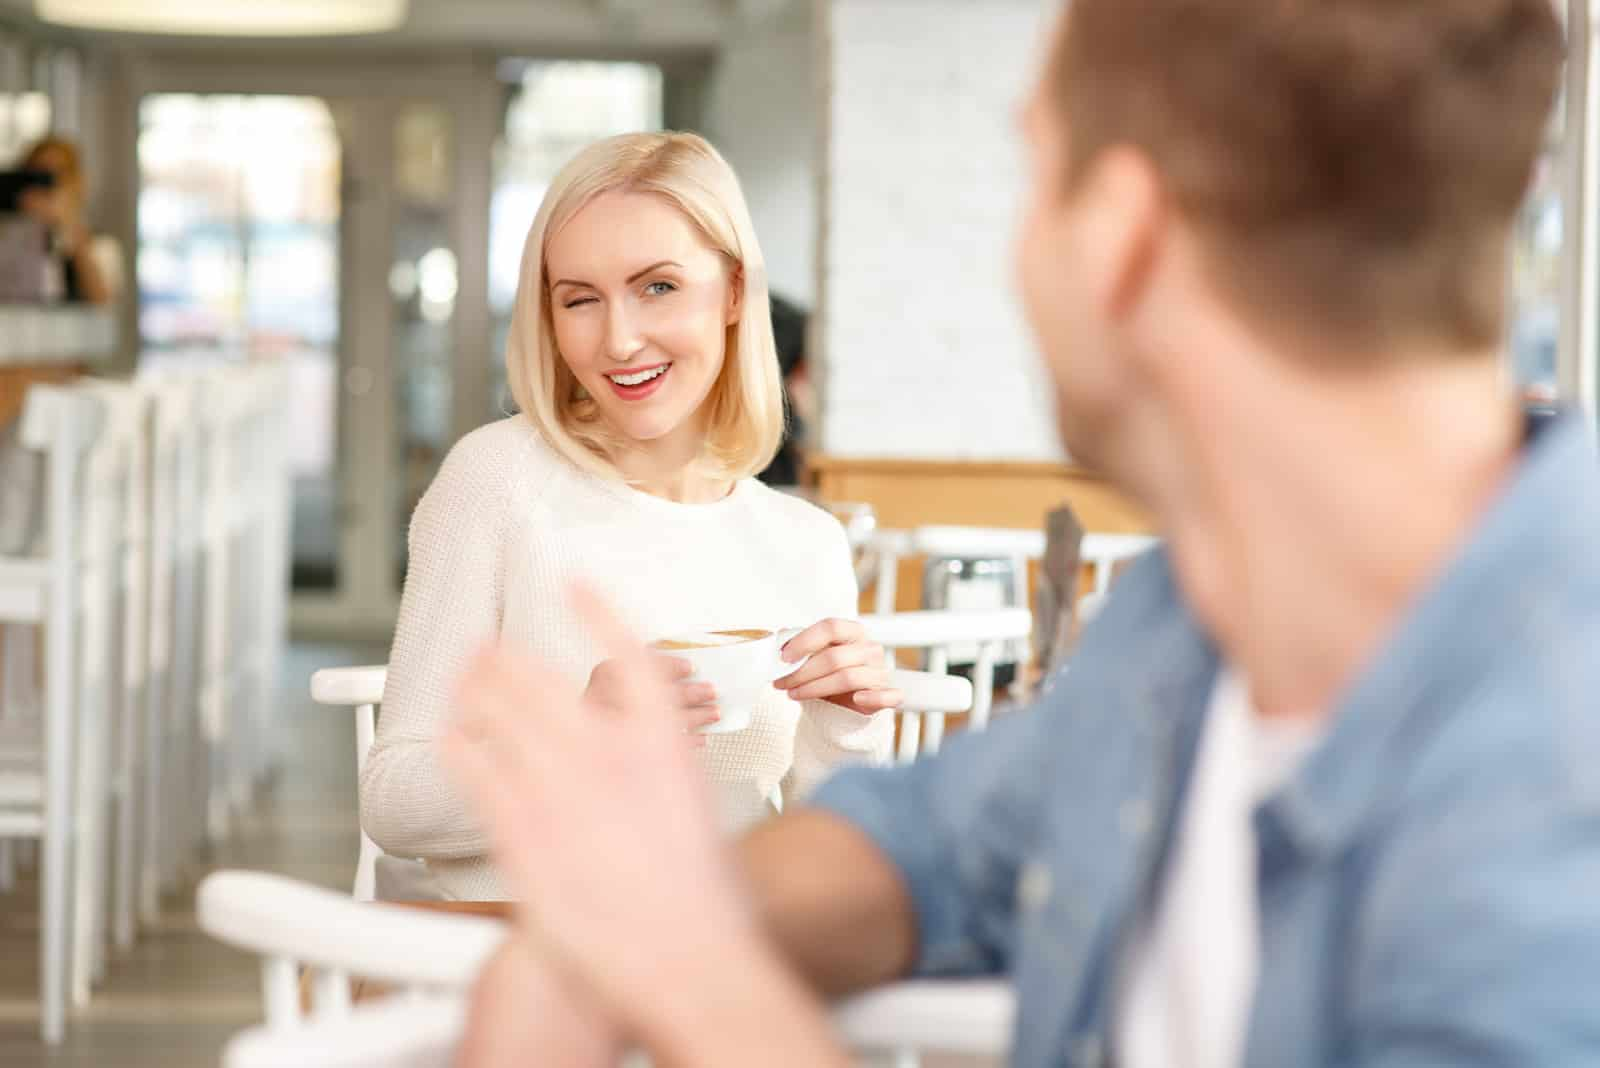 the couple flirts in a cafe